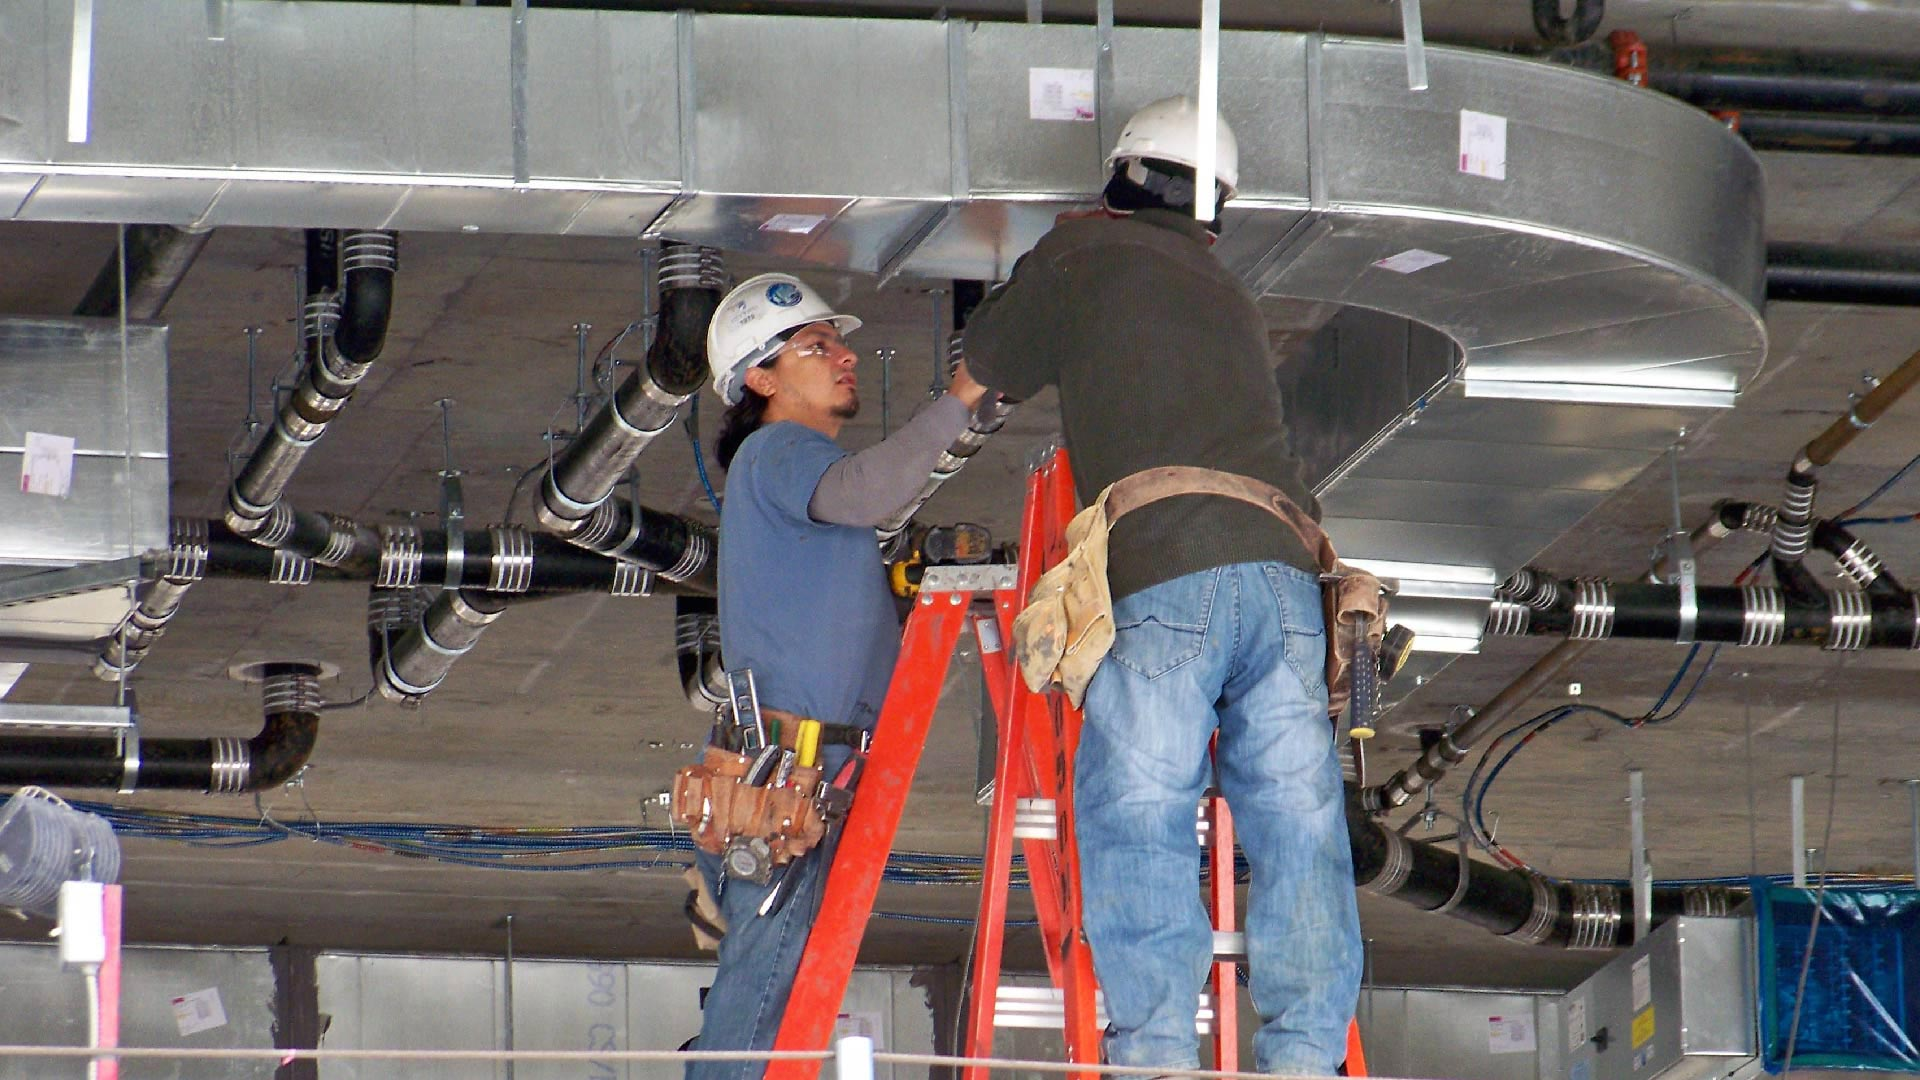 Duct Board Installation | S & R Air Duct Cleaning Services